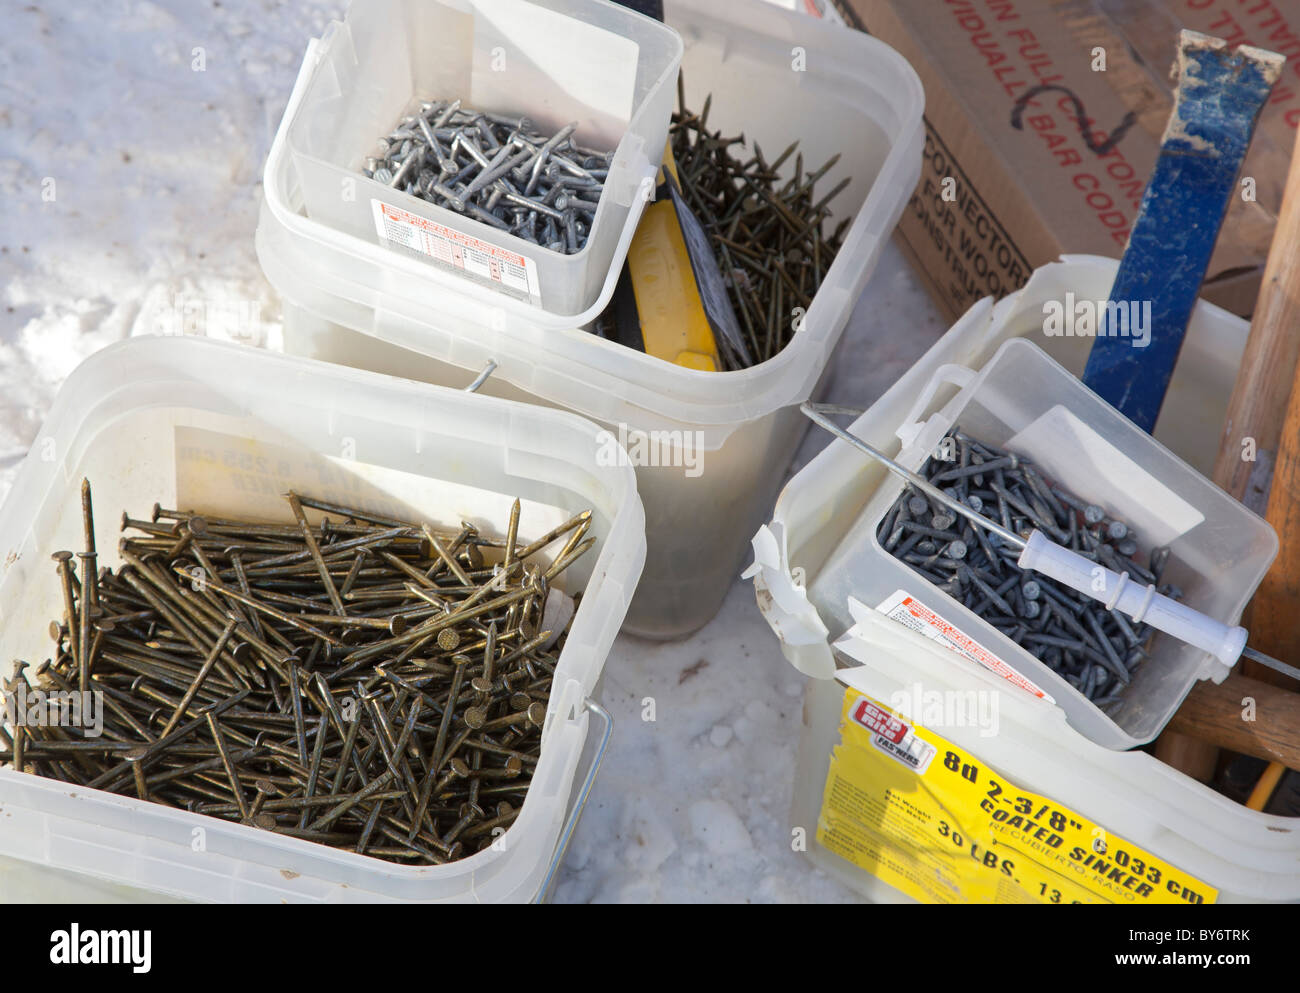 Warren, Michigan - Buckets of nails on the construction site of a Habitat for Humanity house. - Stock Image